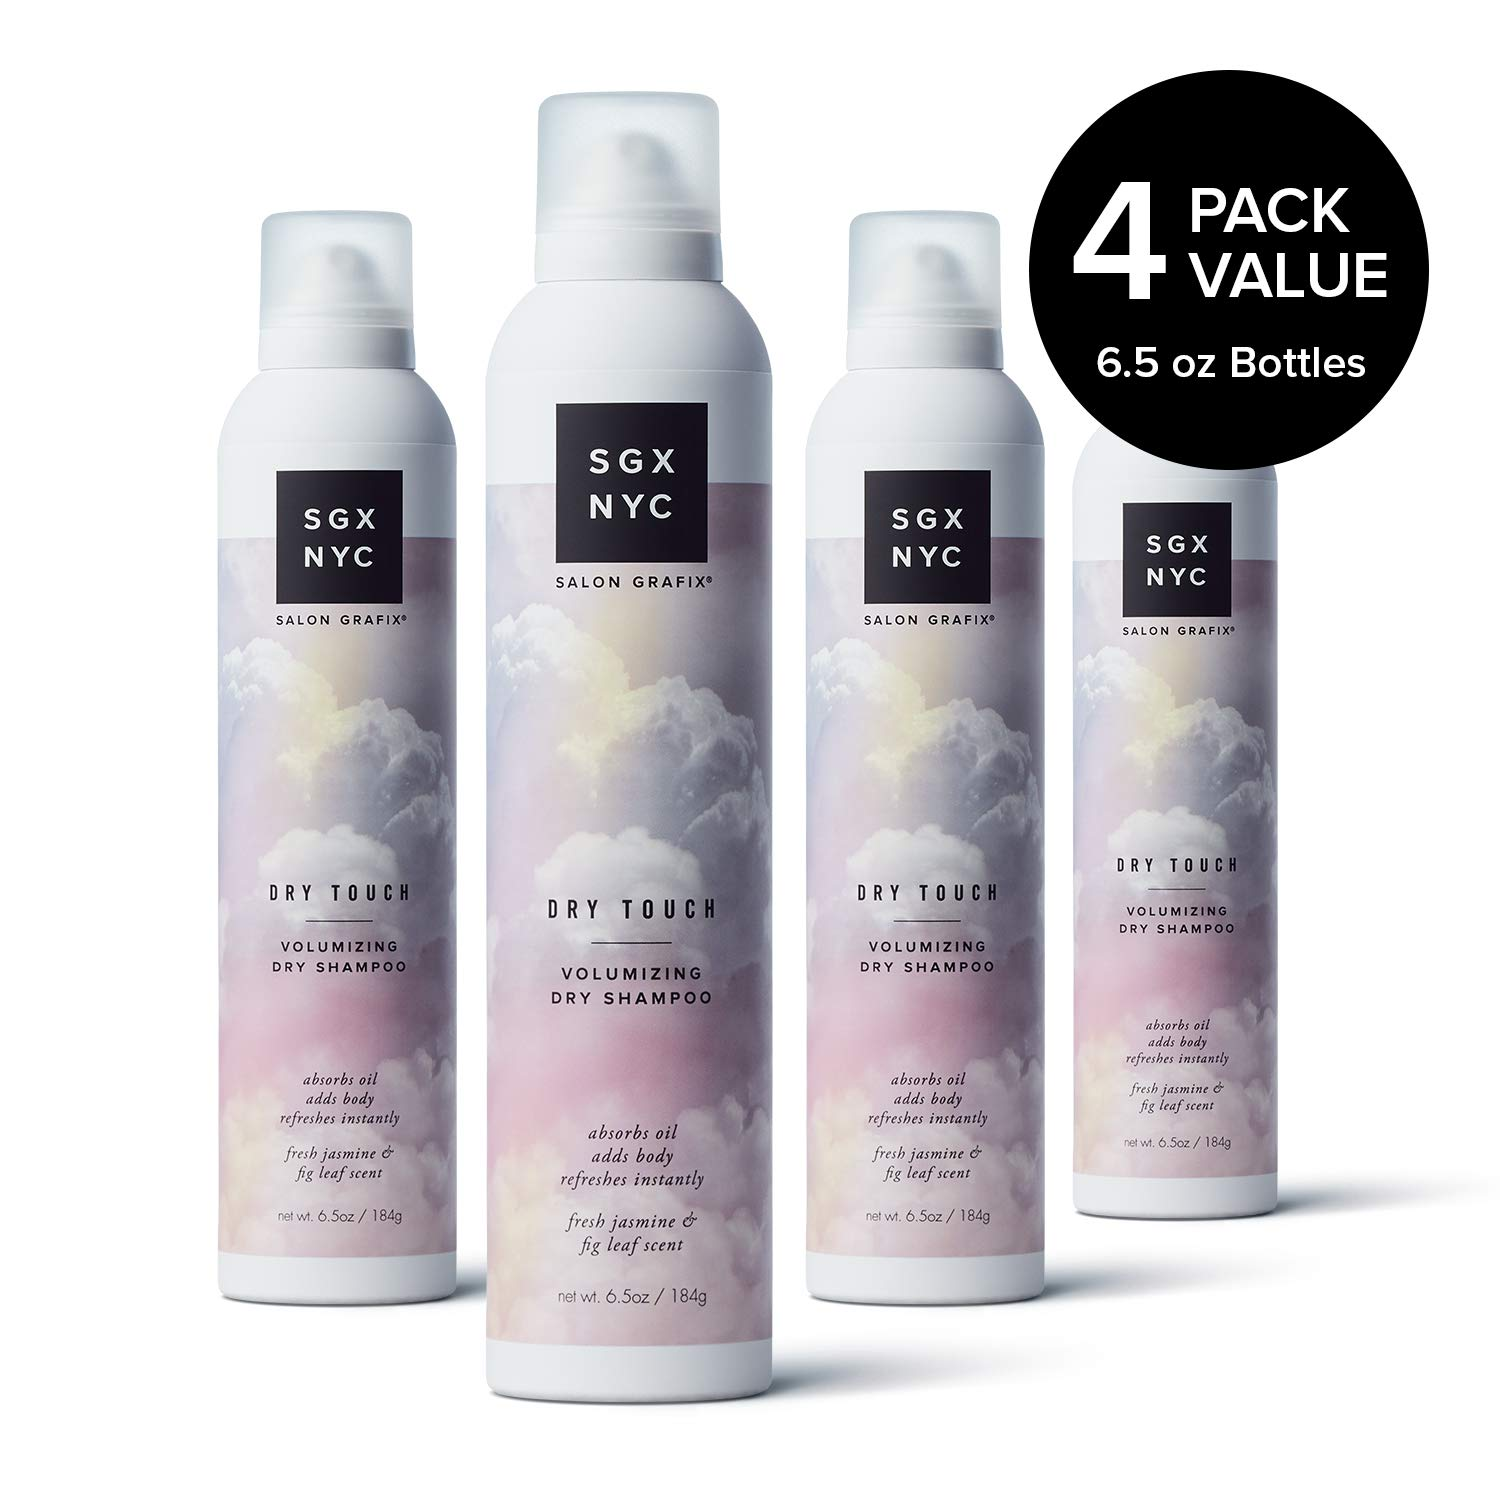 SGX NYC Dry Touch, Volumizing Dry Shampoo for Big Body (8.5 Ounce) (4 Pack) by SGX NYC